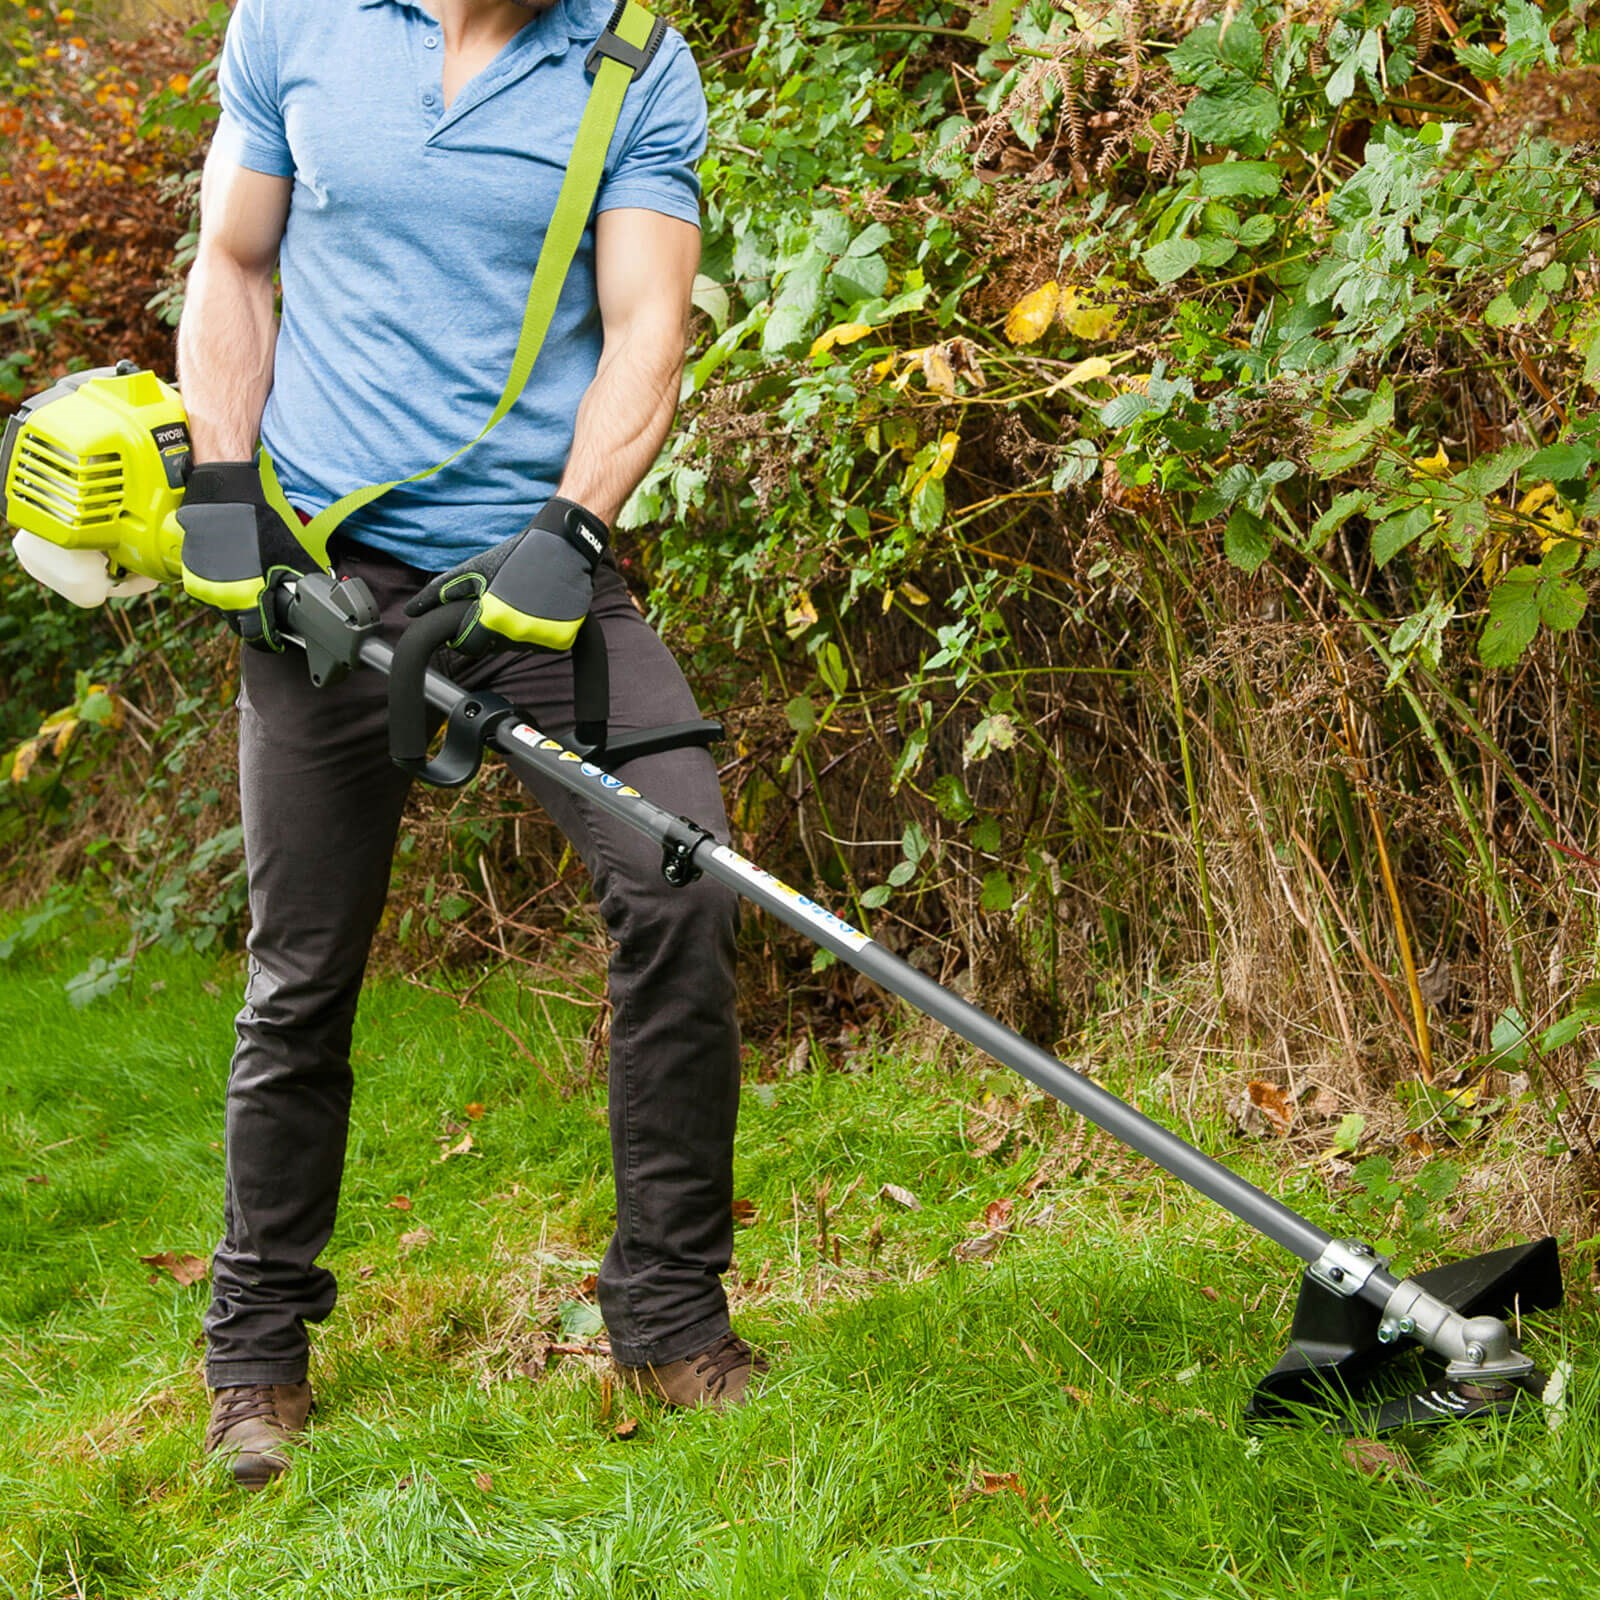 Ryobi RBC254SESO Petrol Expand It 2 in 1 Grass Trimmer and